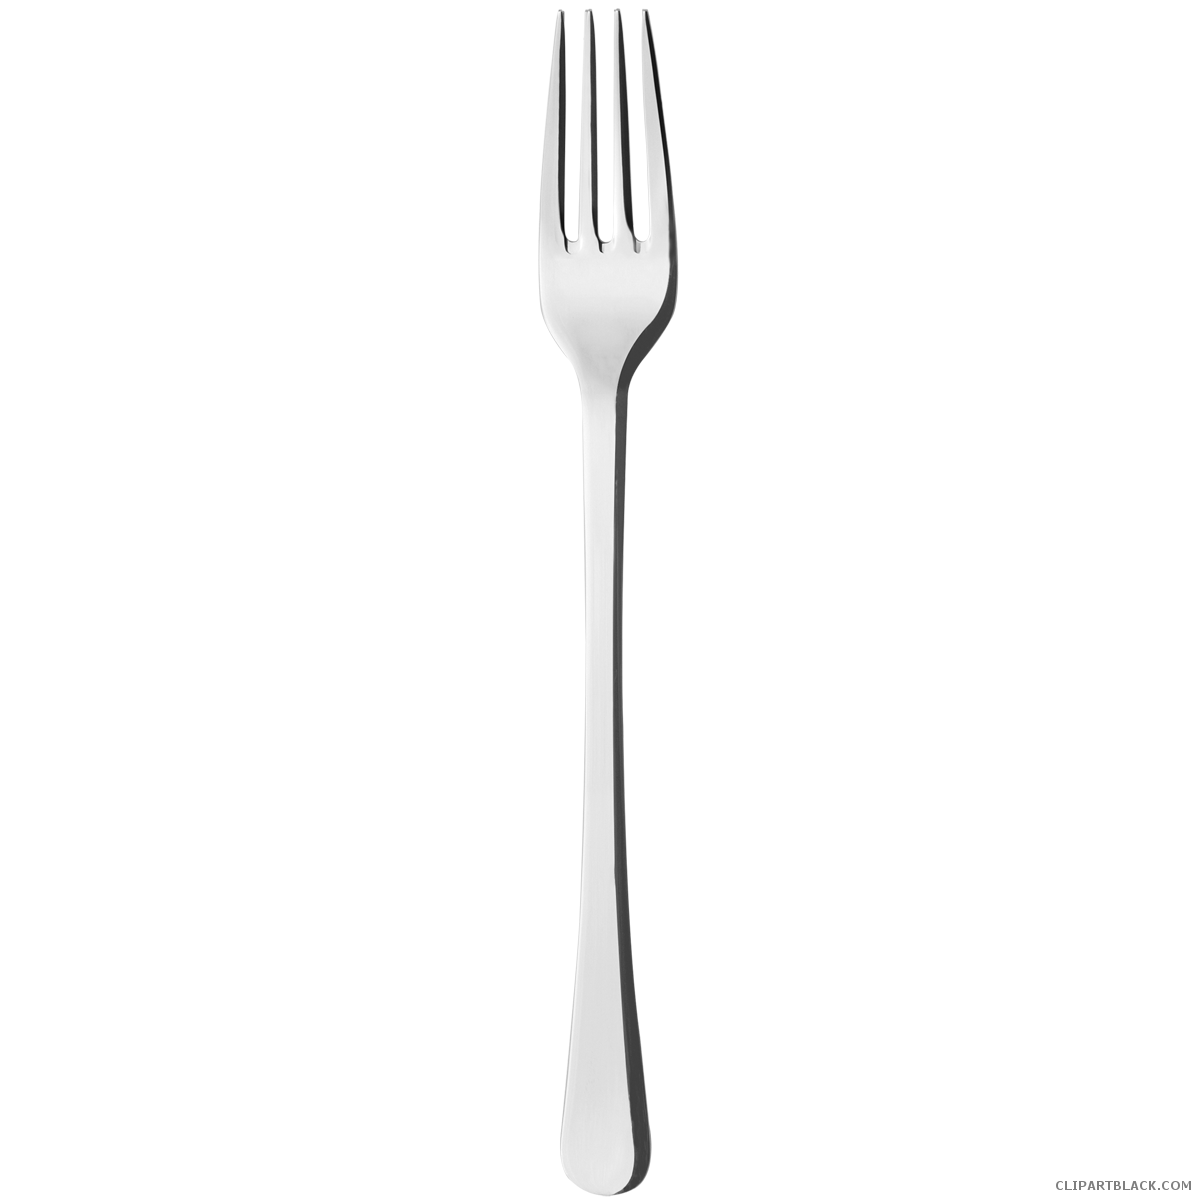 Tools free black images. White clipart fork